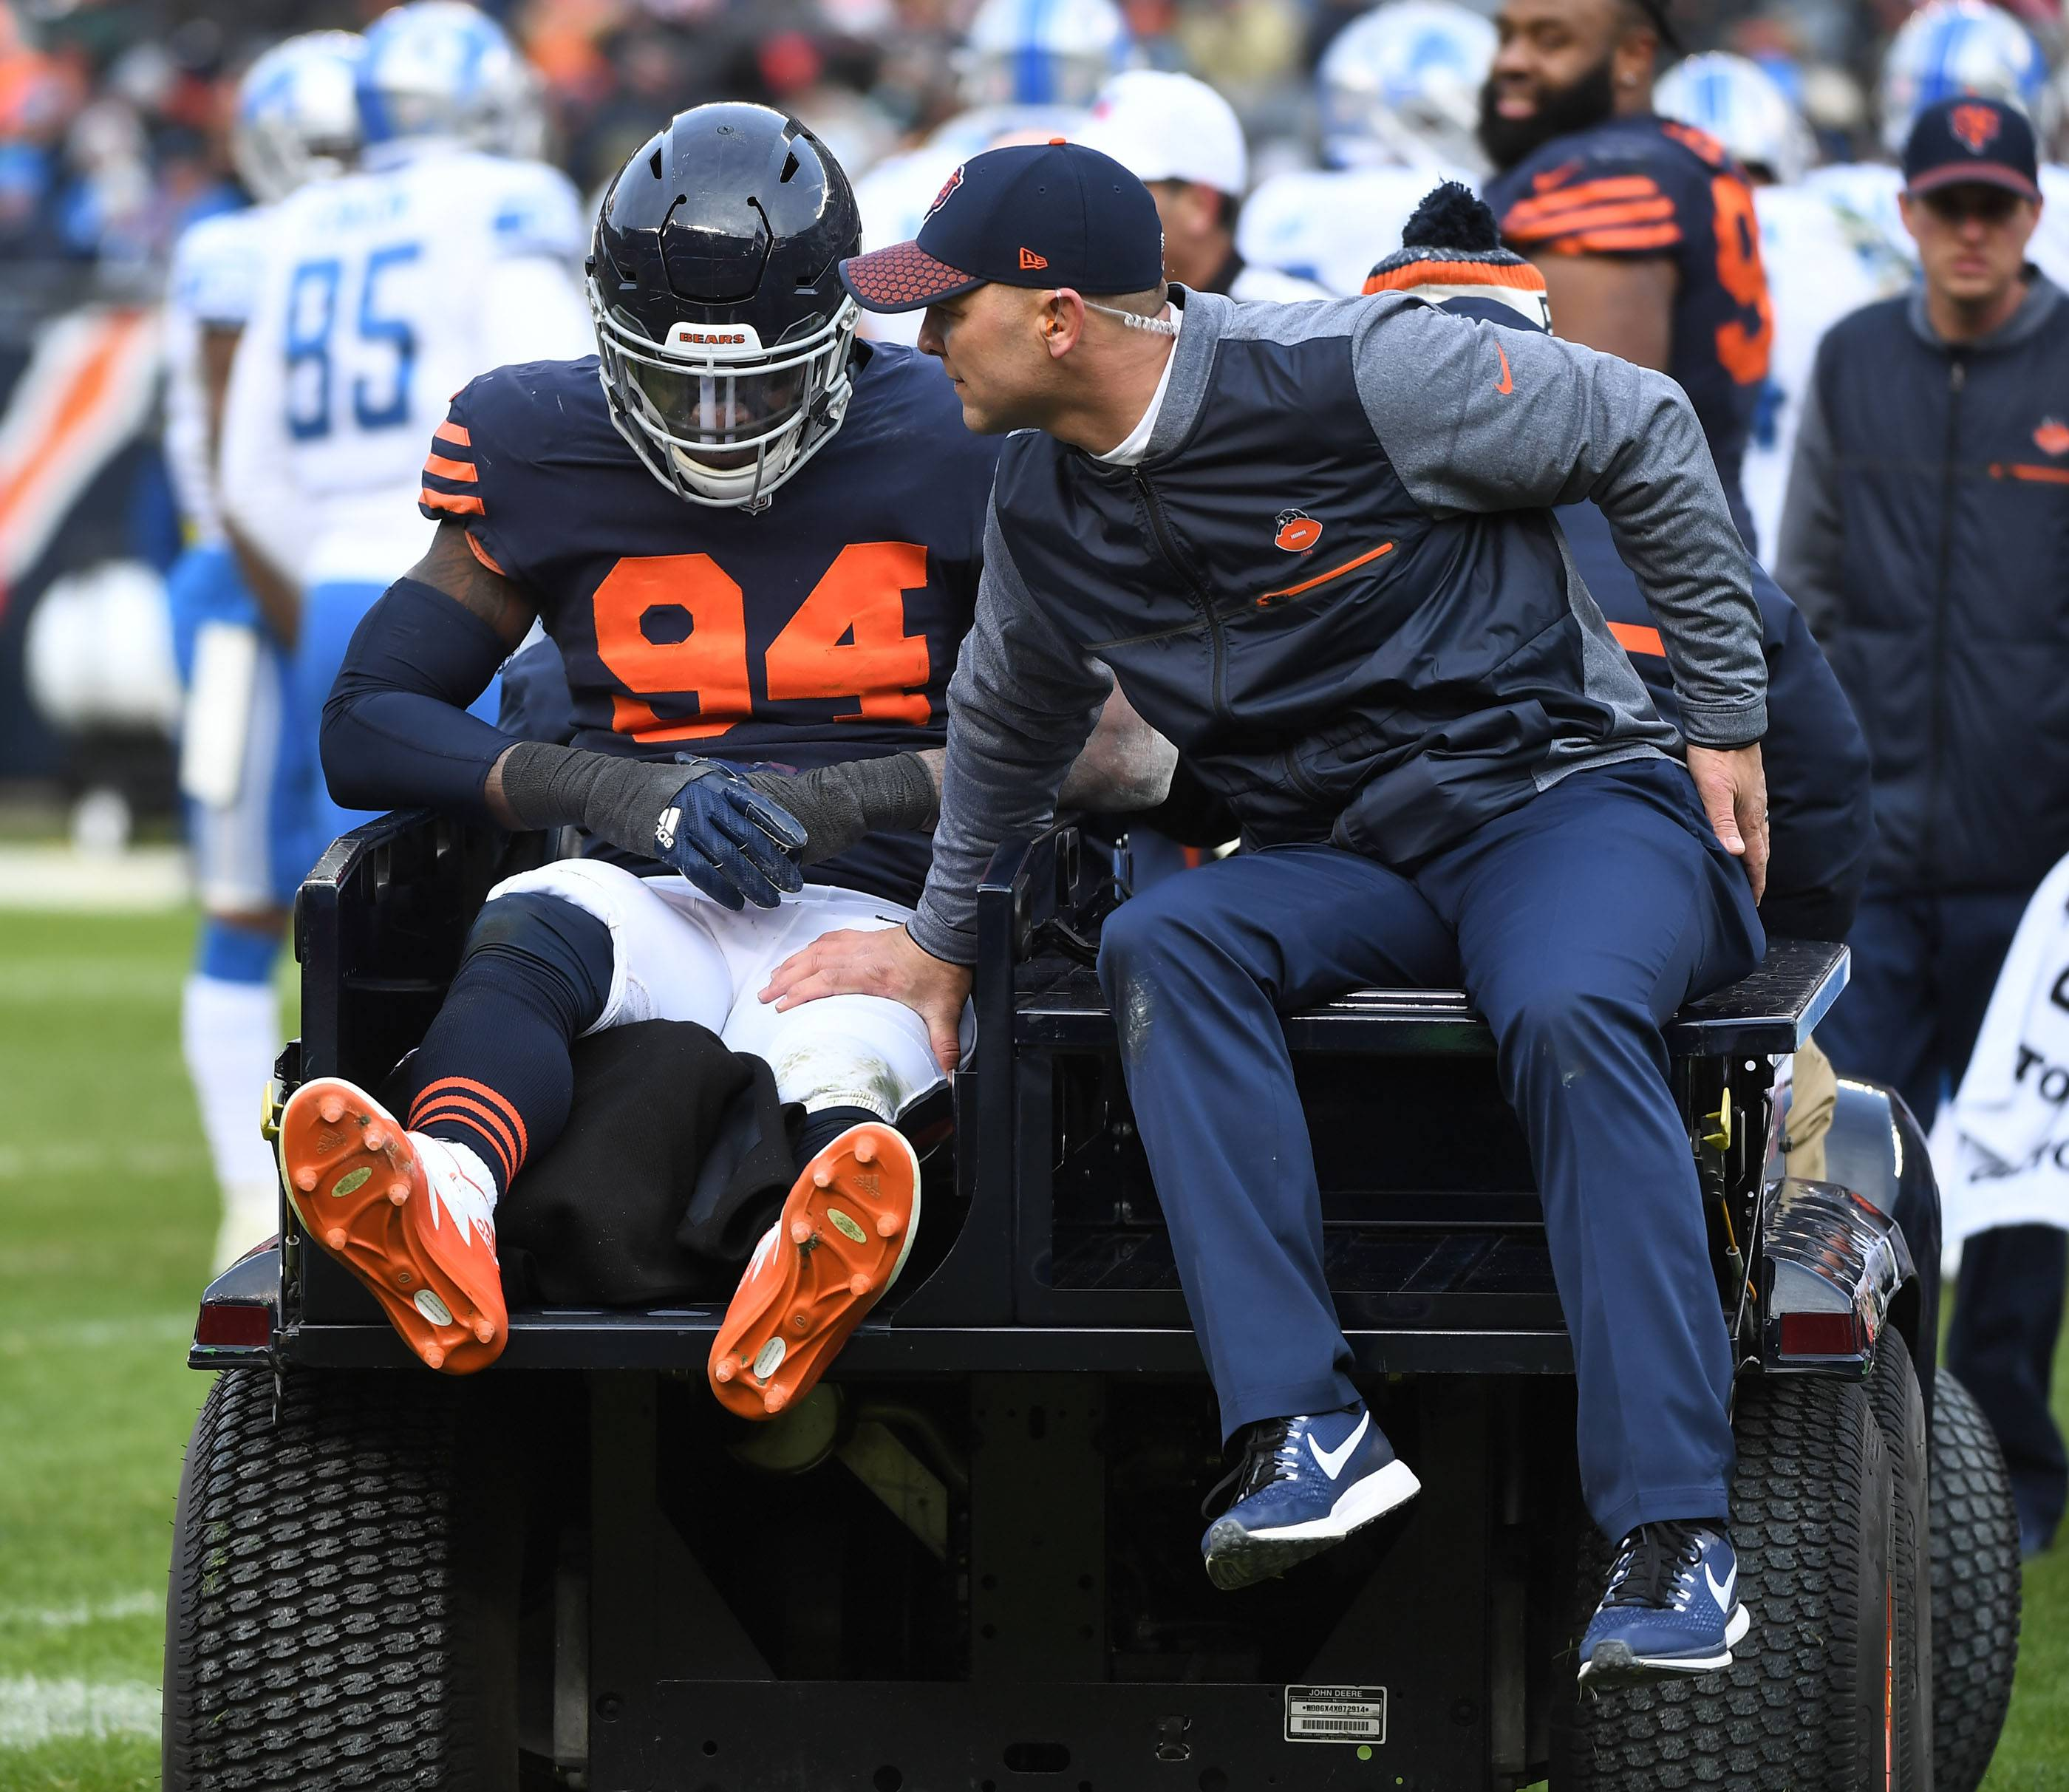 Bears outside linebacker Leonard Floyd is taken from the field after suffering a knee injury in the fourth quarter Sunday.